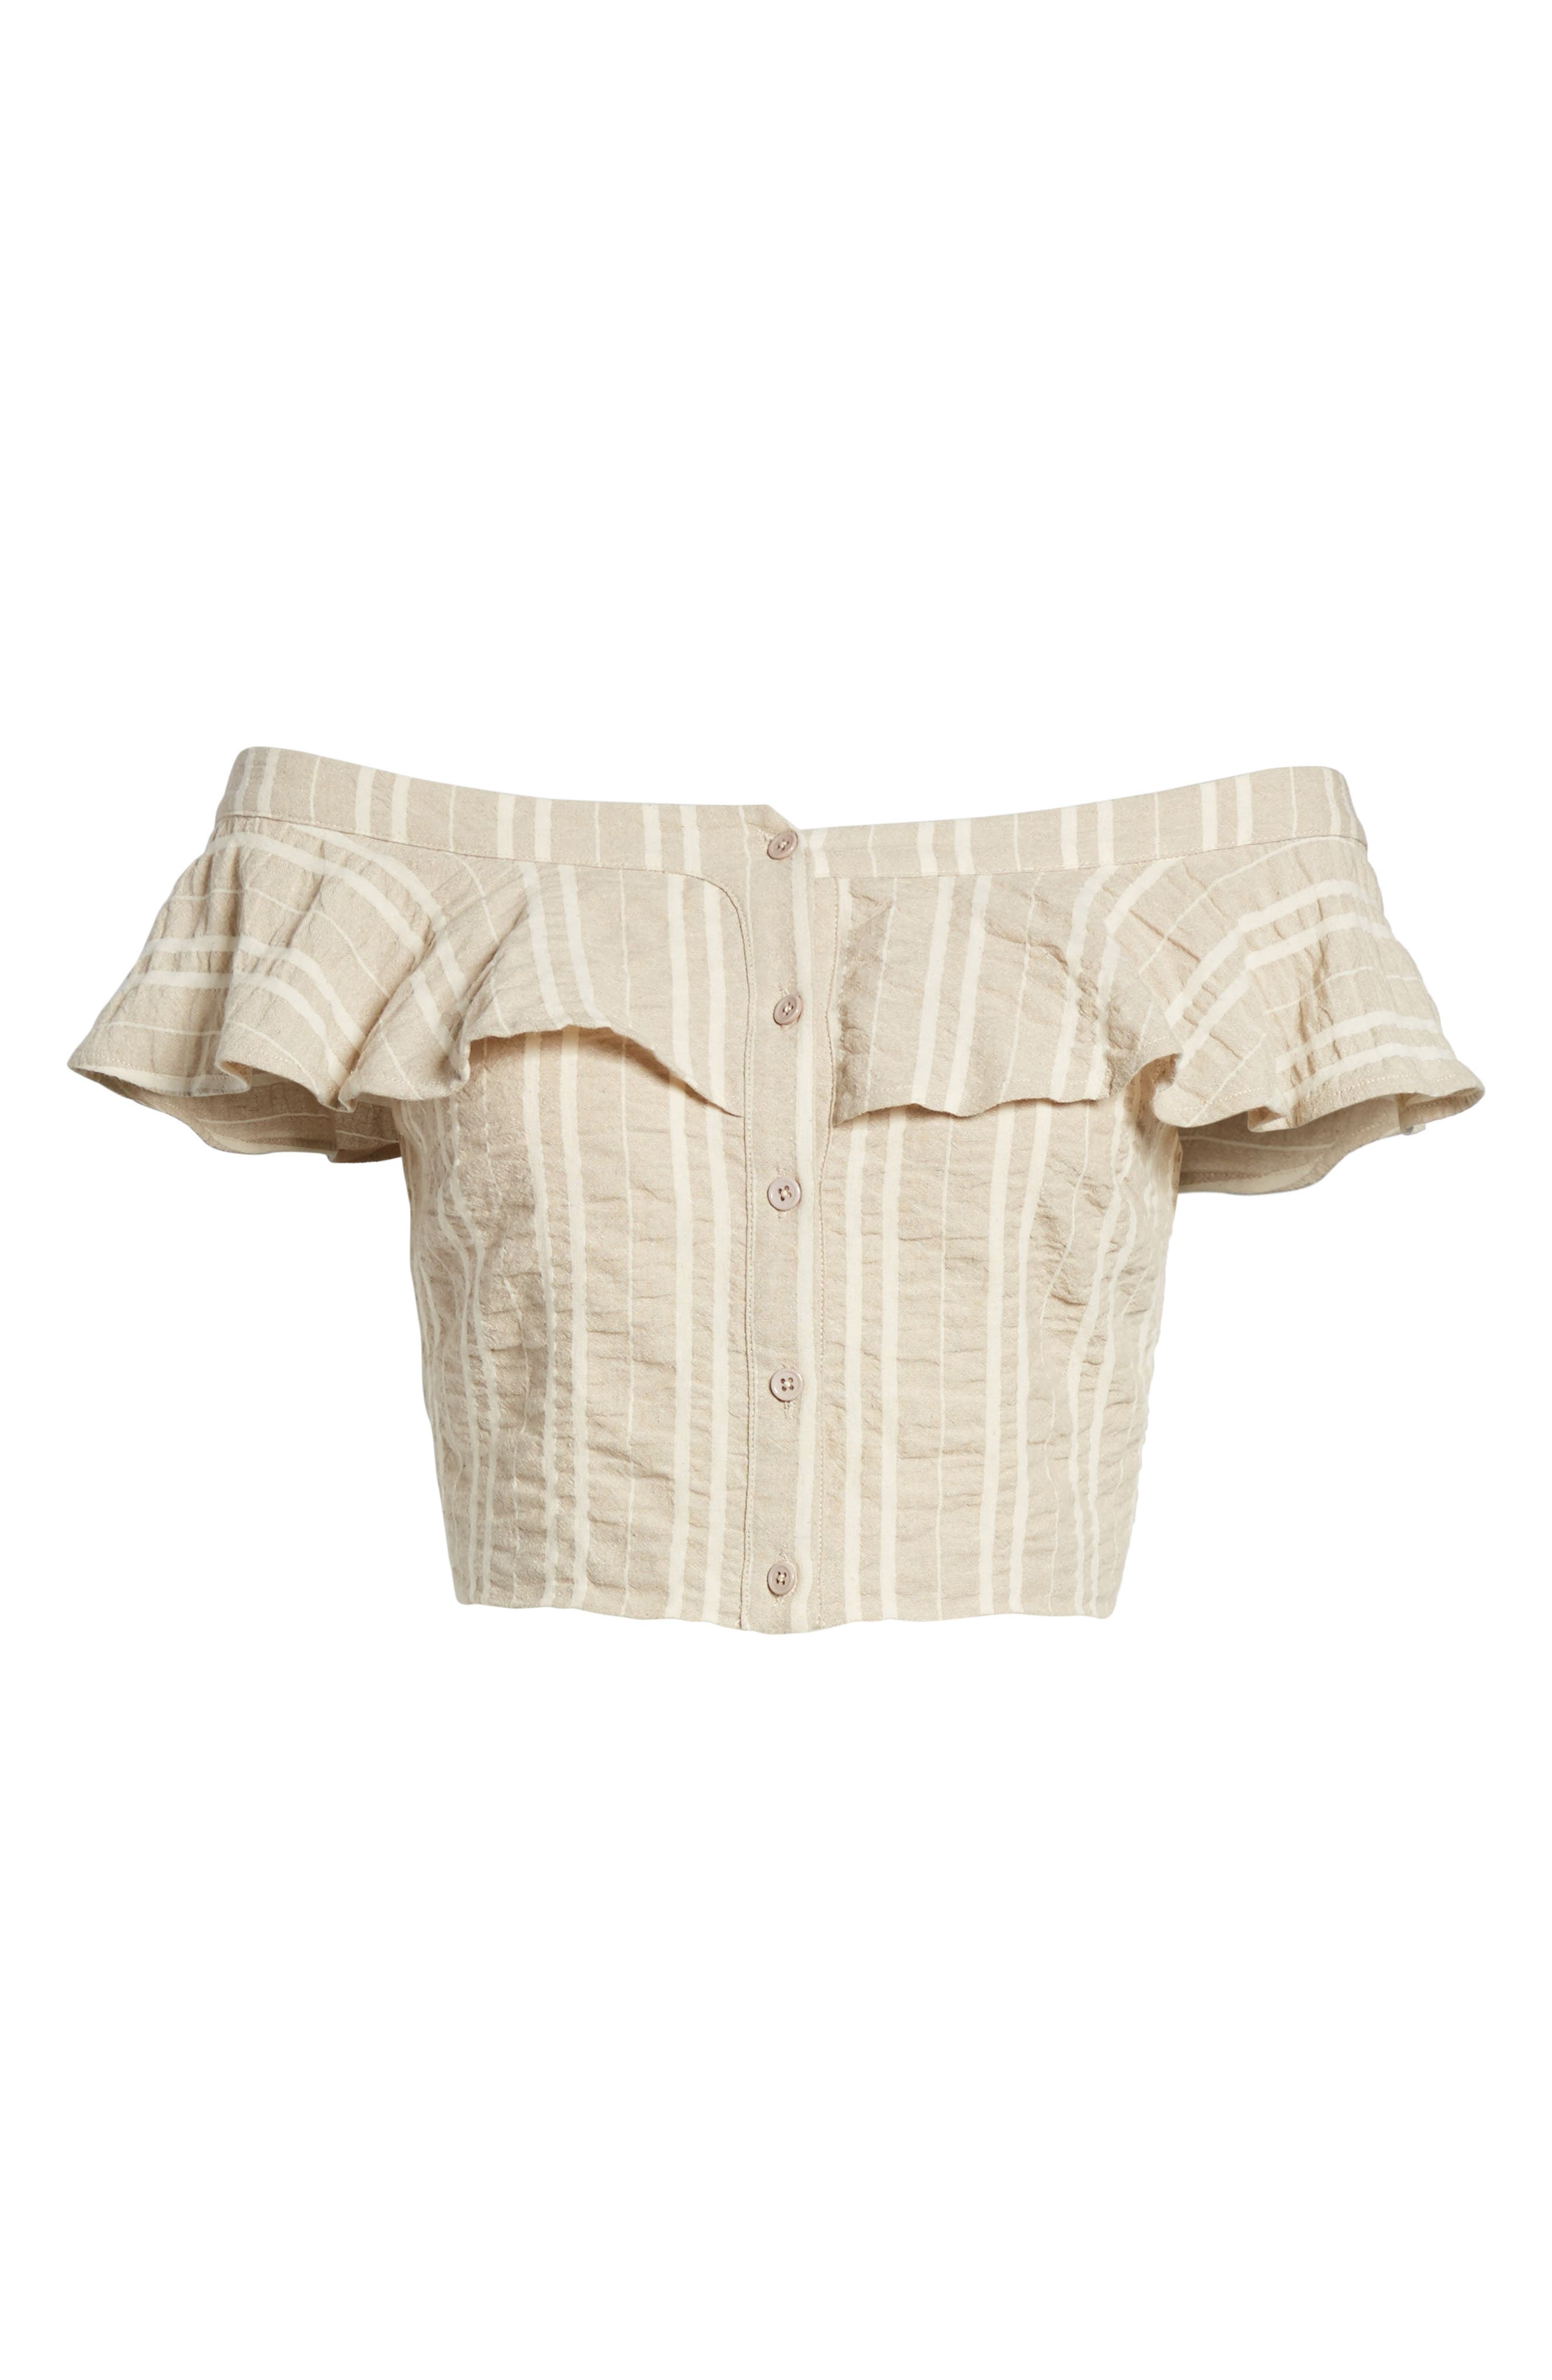 Stella Ruffle Off the Shoulder Crop Top,                             Alternate thumbnail 7, color,                             904